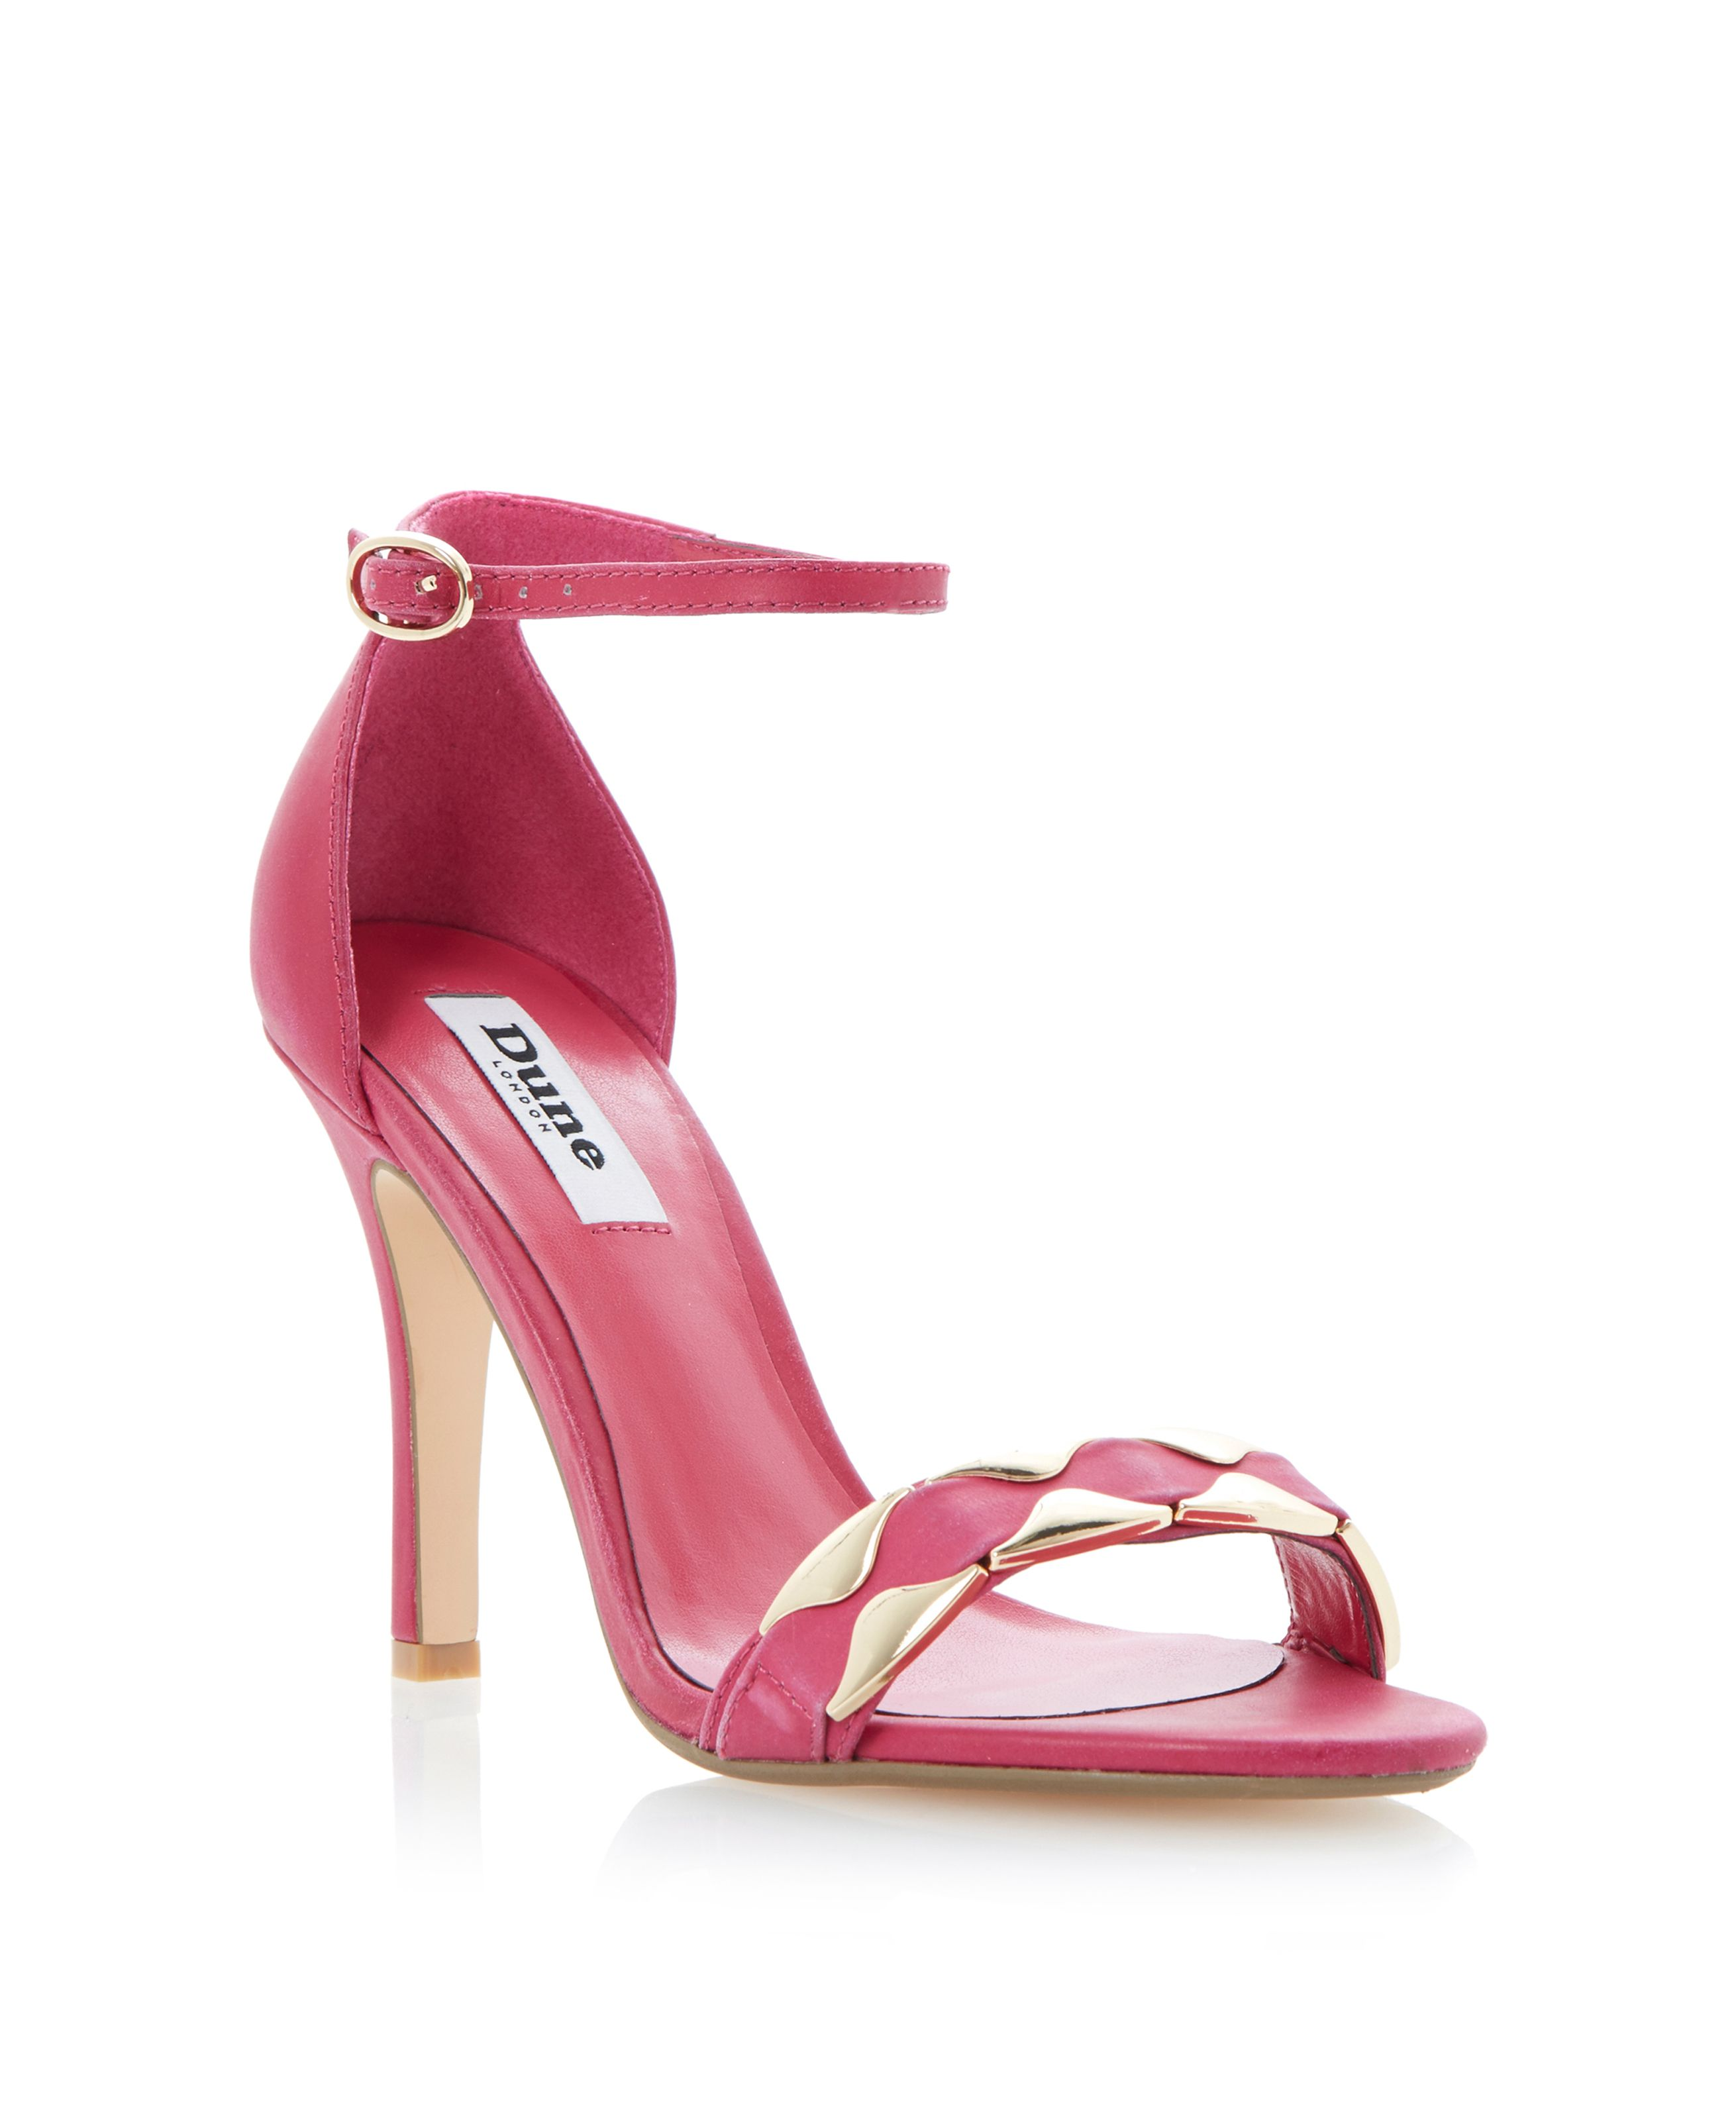 Halette leather stiletto sandals